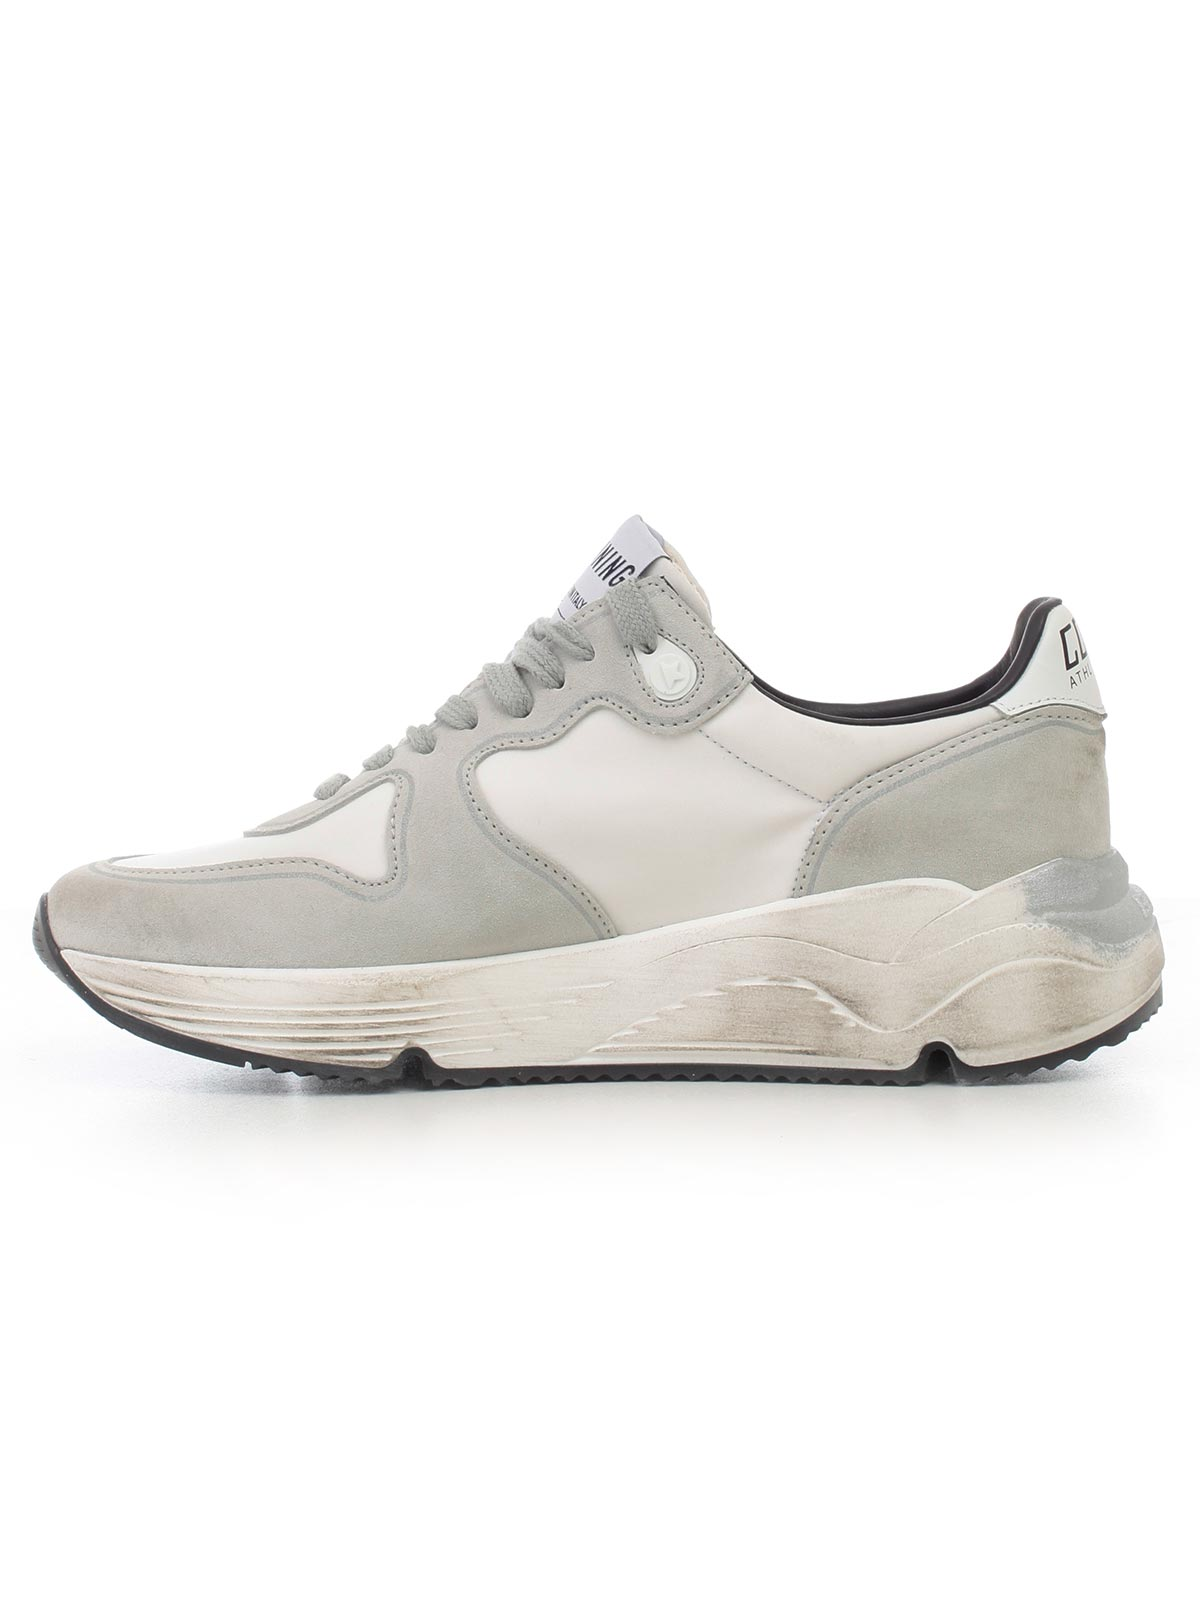 Picture of Golden Goose Deluxe Brand Shoes